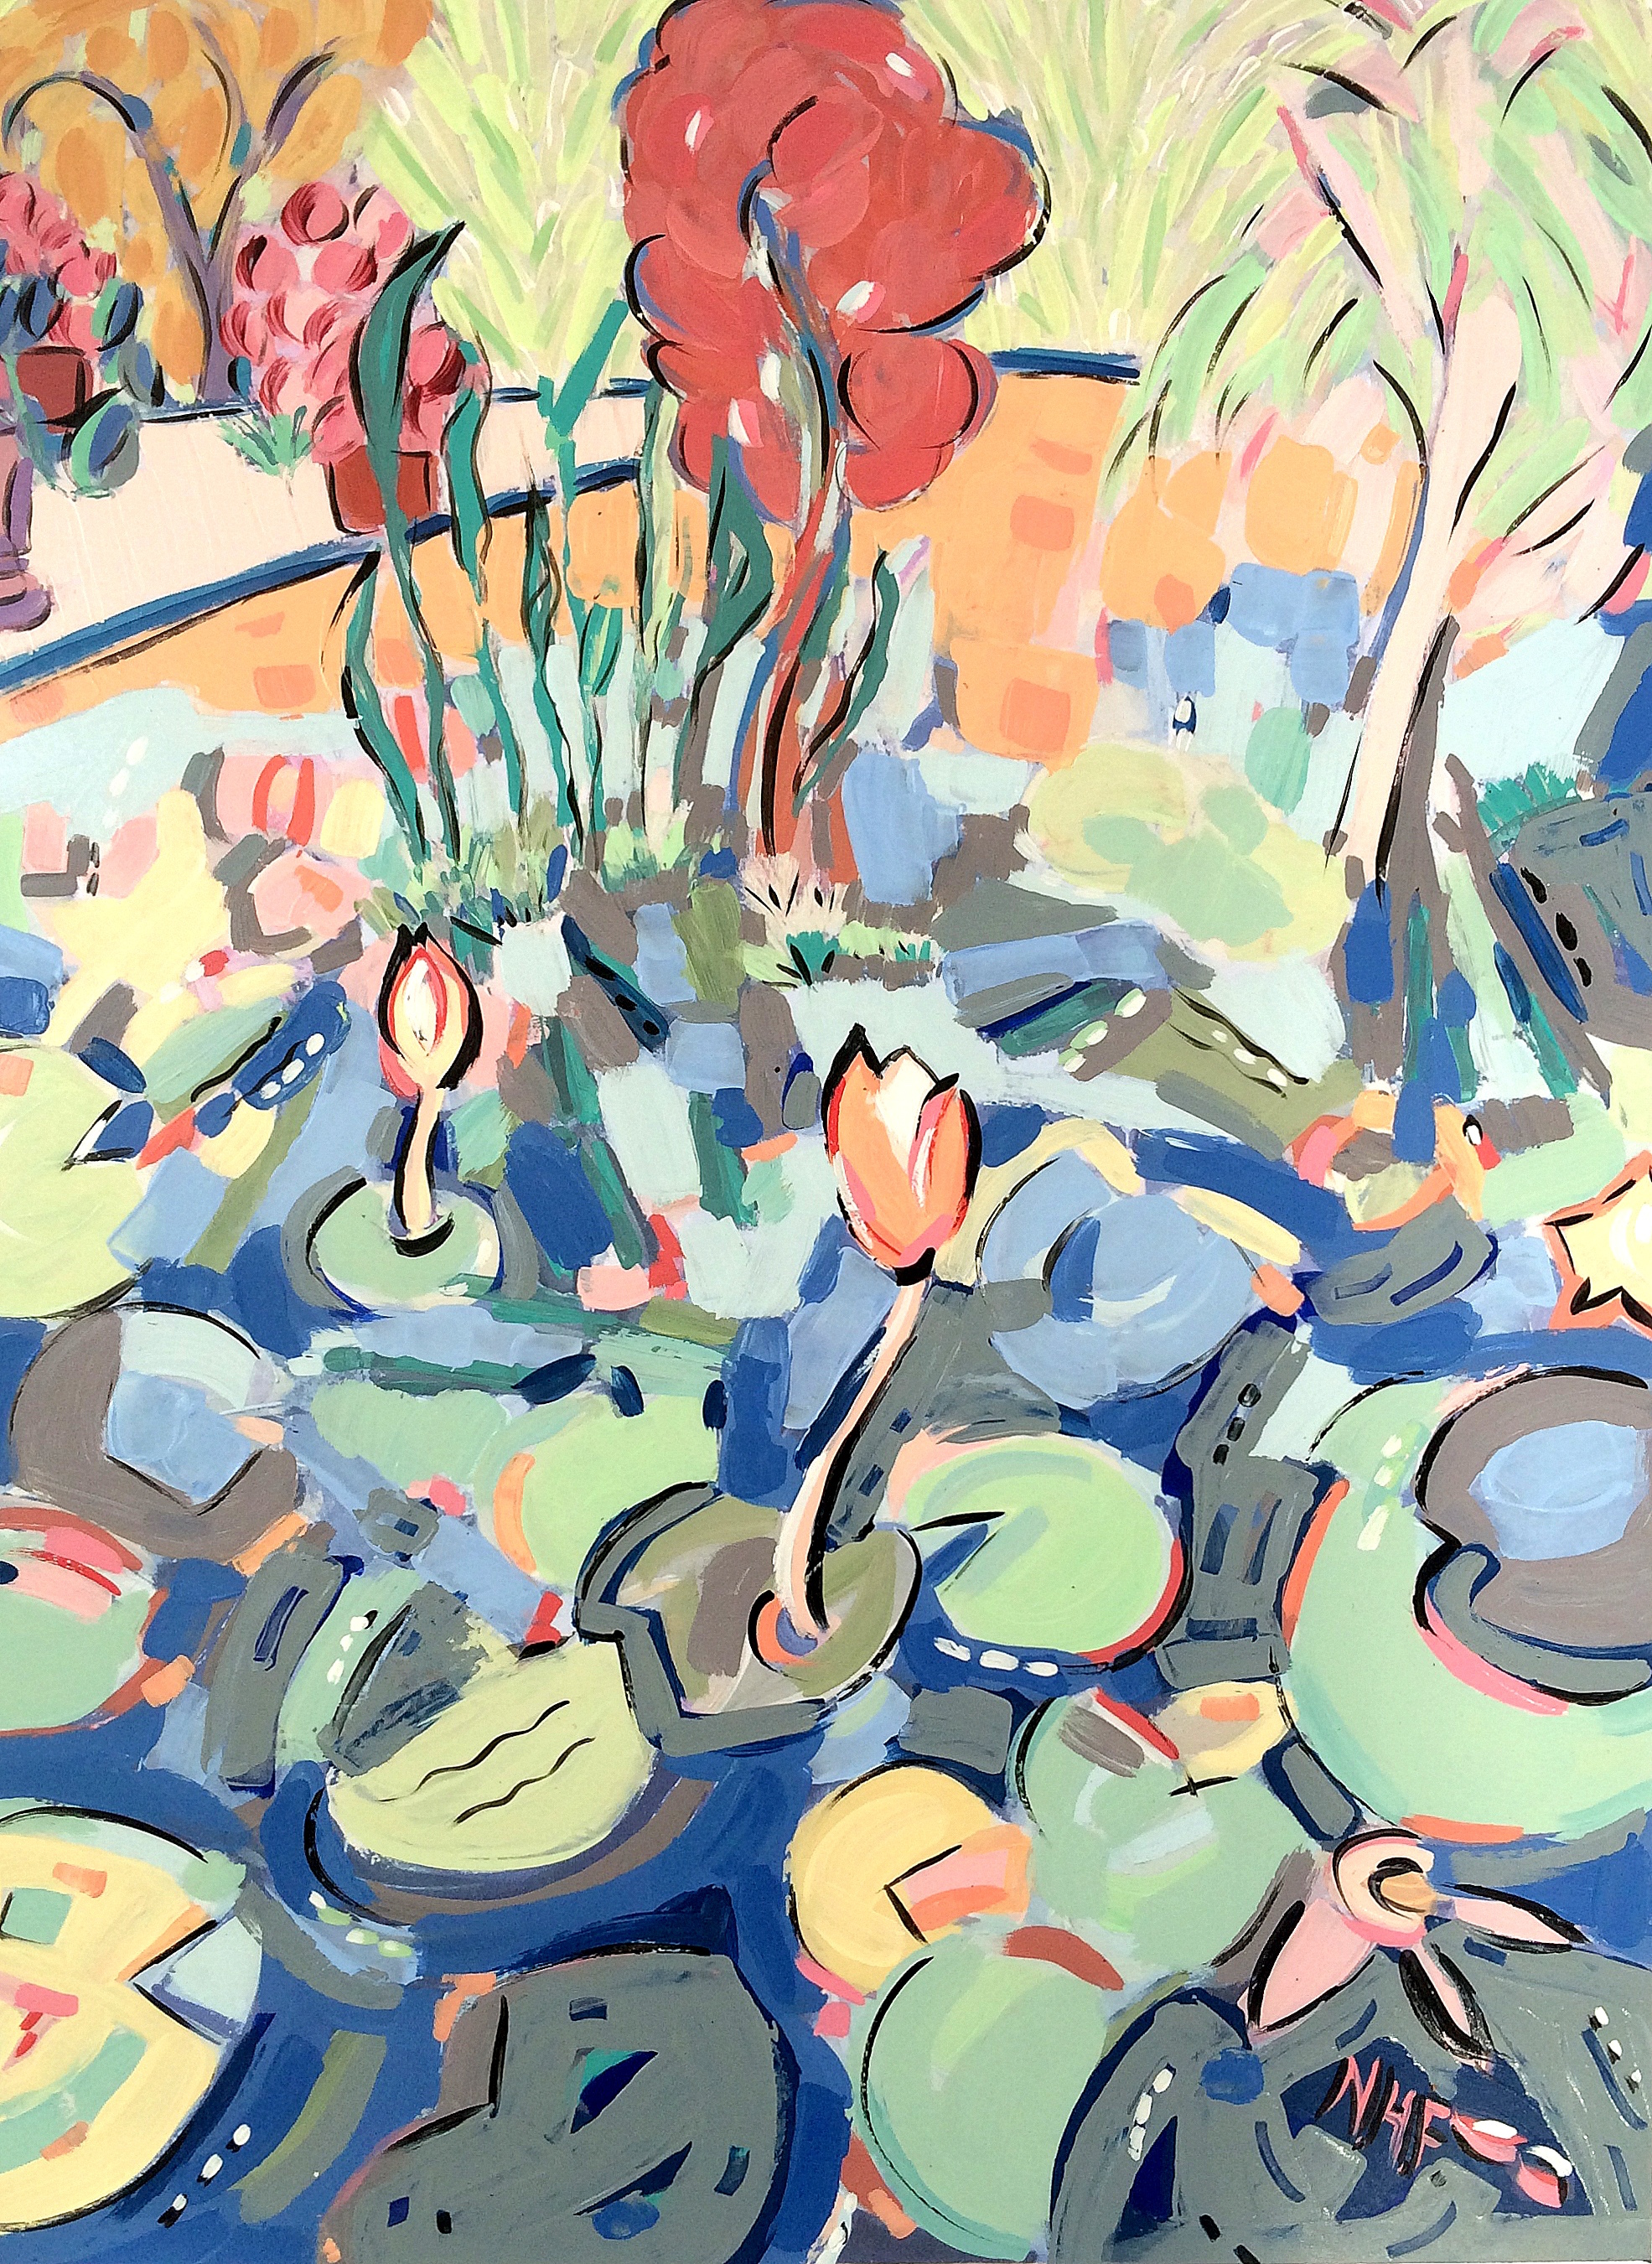 Water Lilies in the Botanical Gardens 2 , acrylic on mounted board, 18x15, 22x20 matted